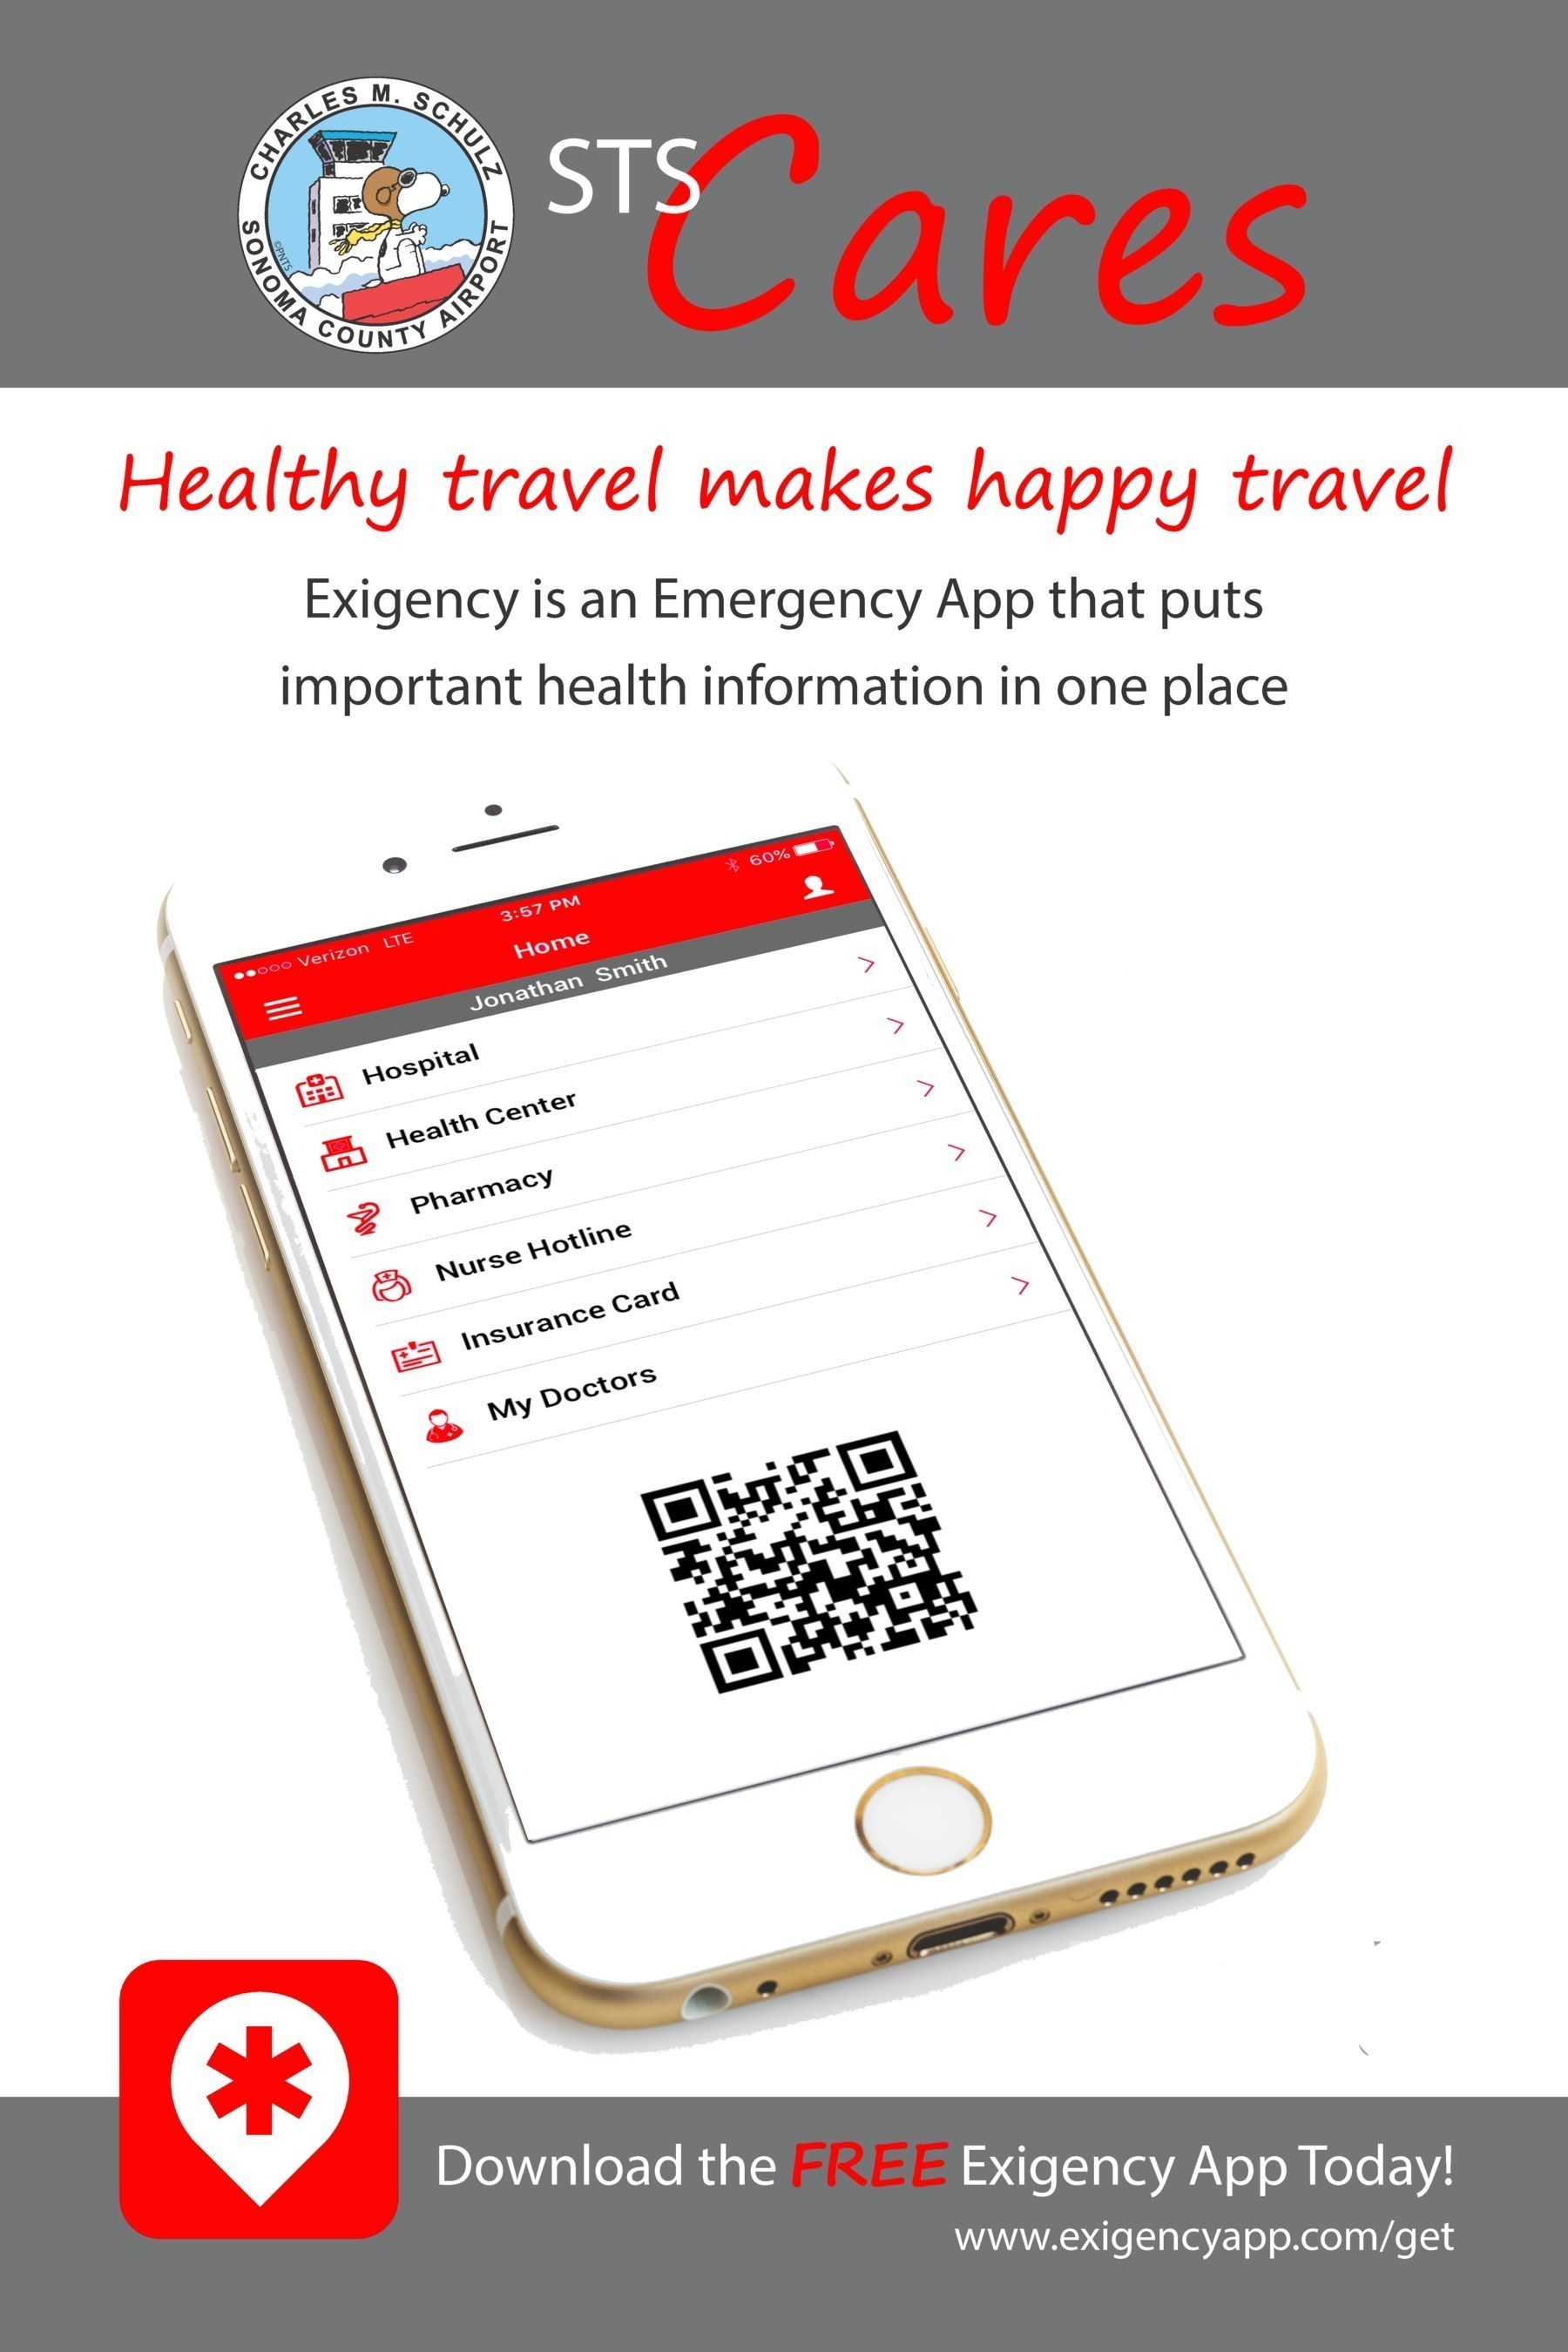 Charles M. Schulz - Sonoma County Airport First to Launch Holiday Promotion with Health and Travel App